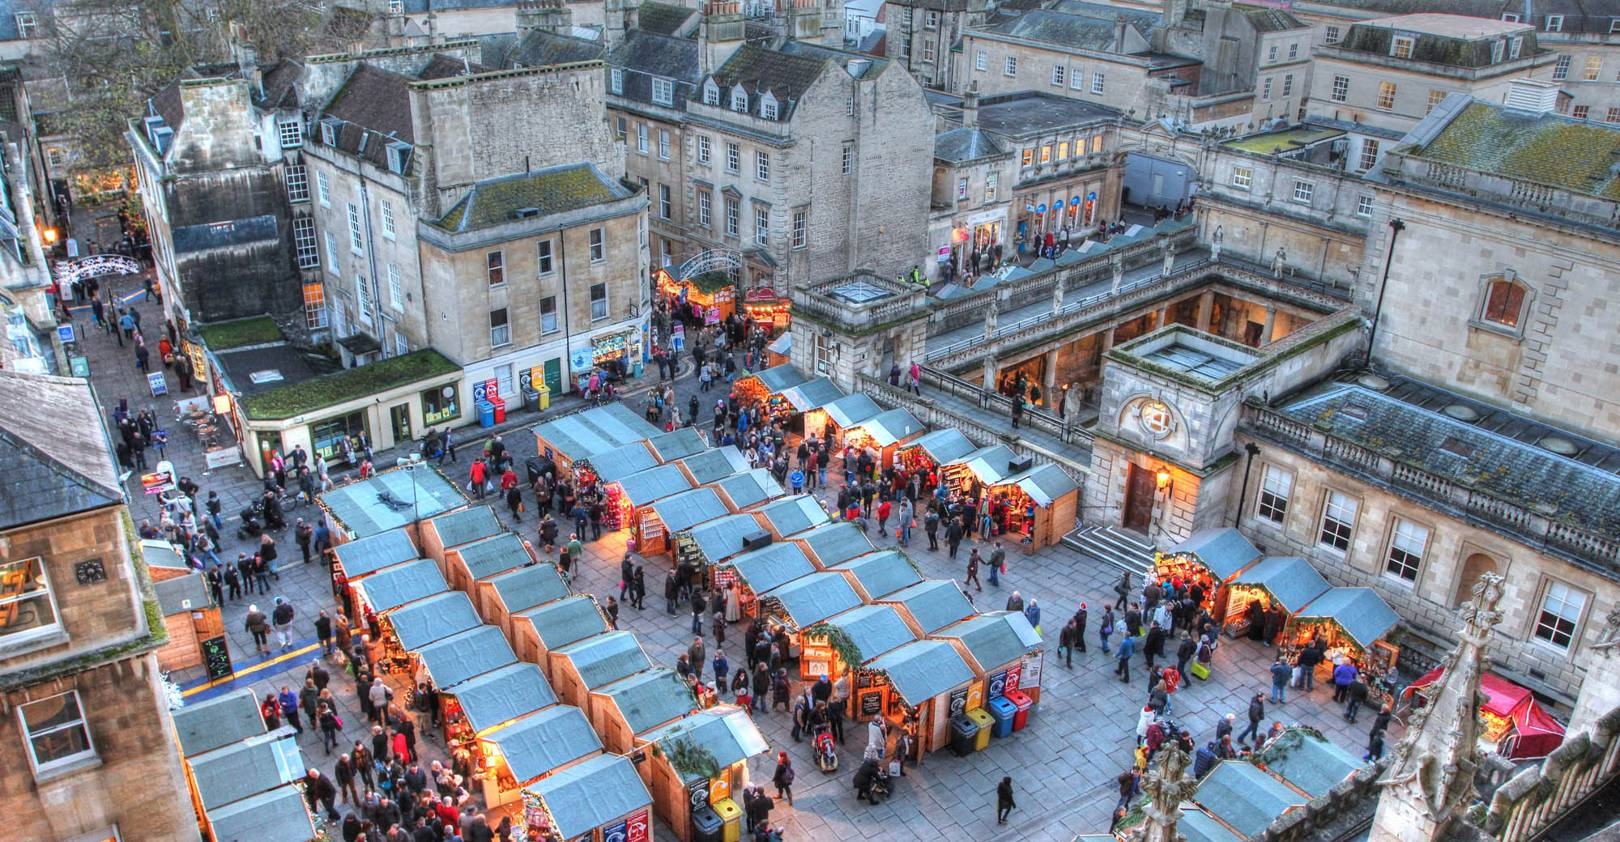 Six of the best Christmas markets in the UK